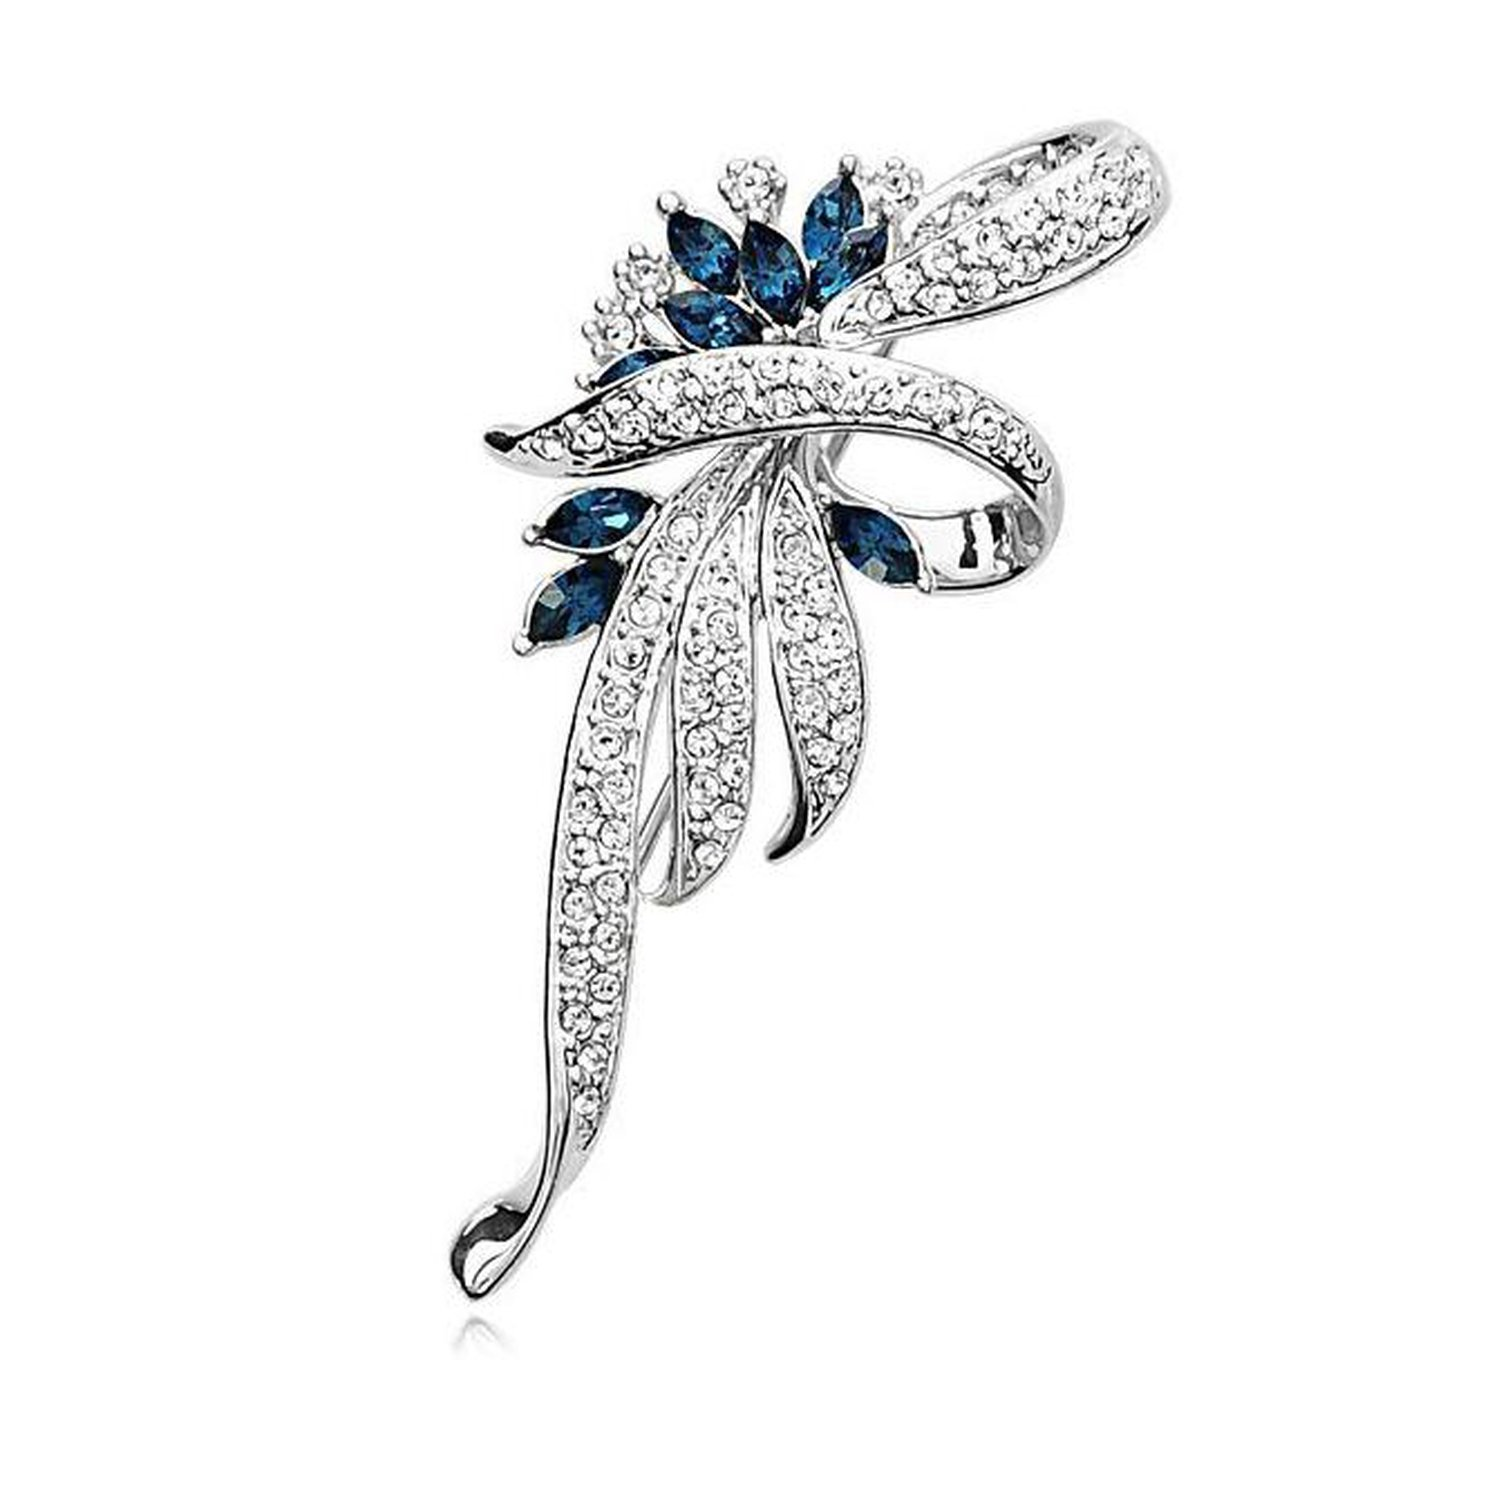 Baolustre Crystal Flower Brooch Lapel Pin Rhinestone Women Wedding Hijab Pins Large Brooches,Silver